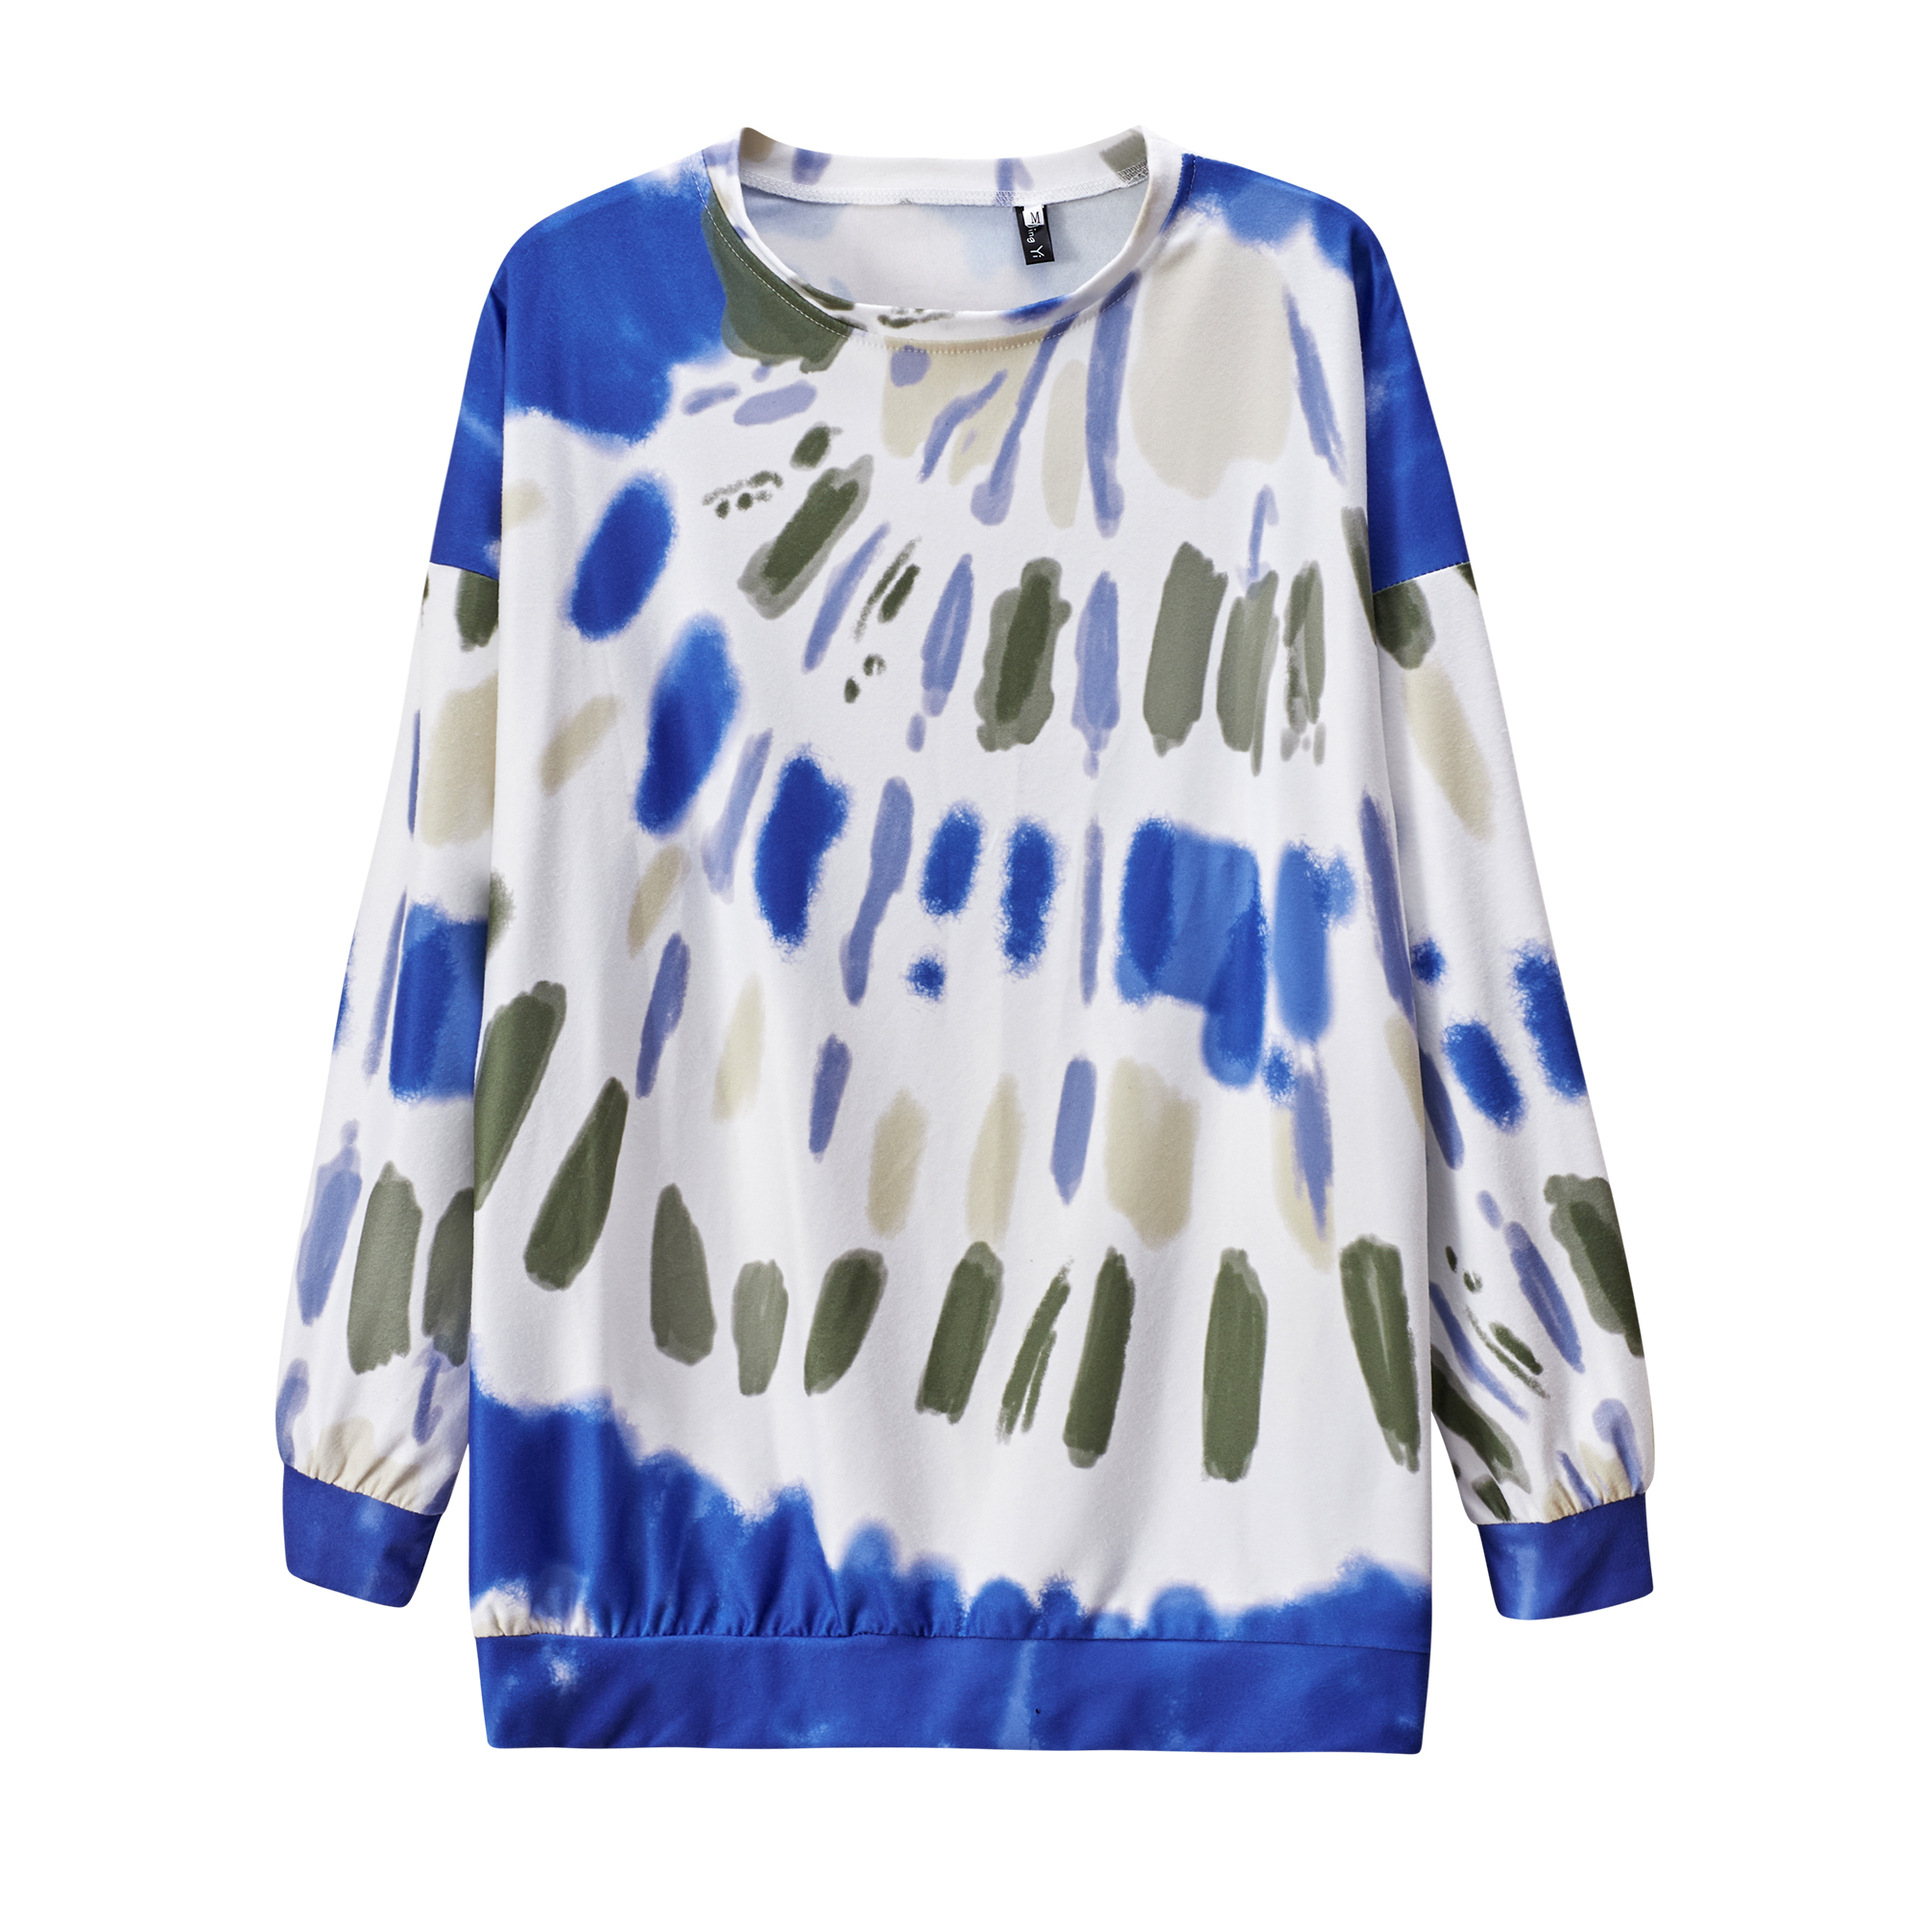 autumn and winter new long-sleeved women's round neck casual loose tie-dye sweater  NSYF849